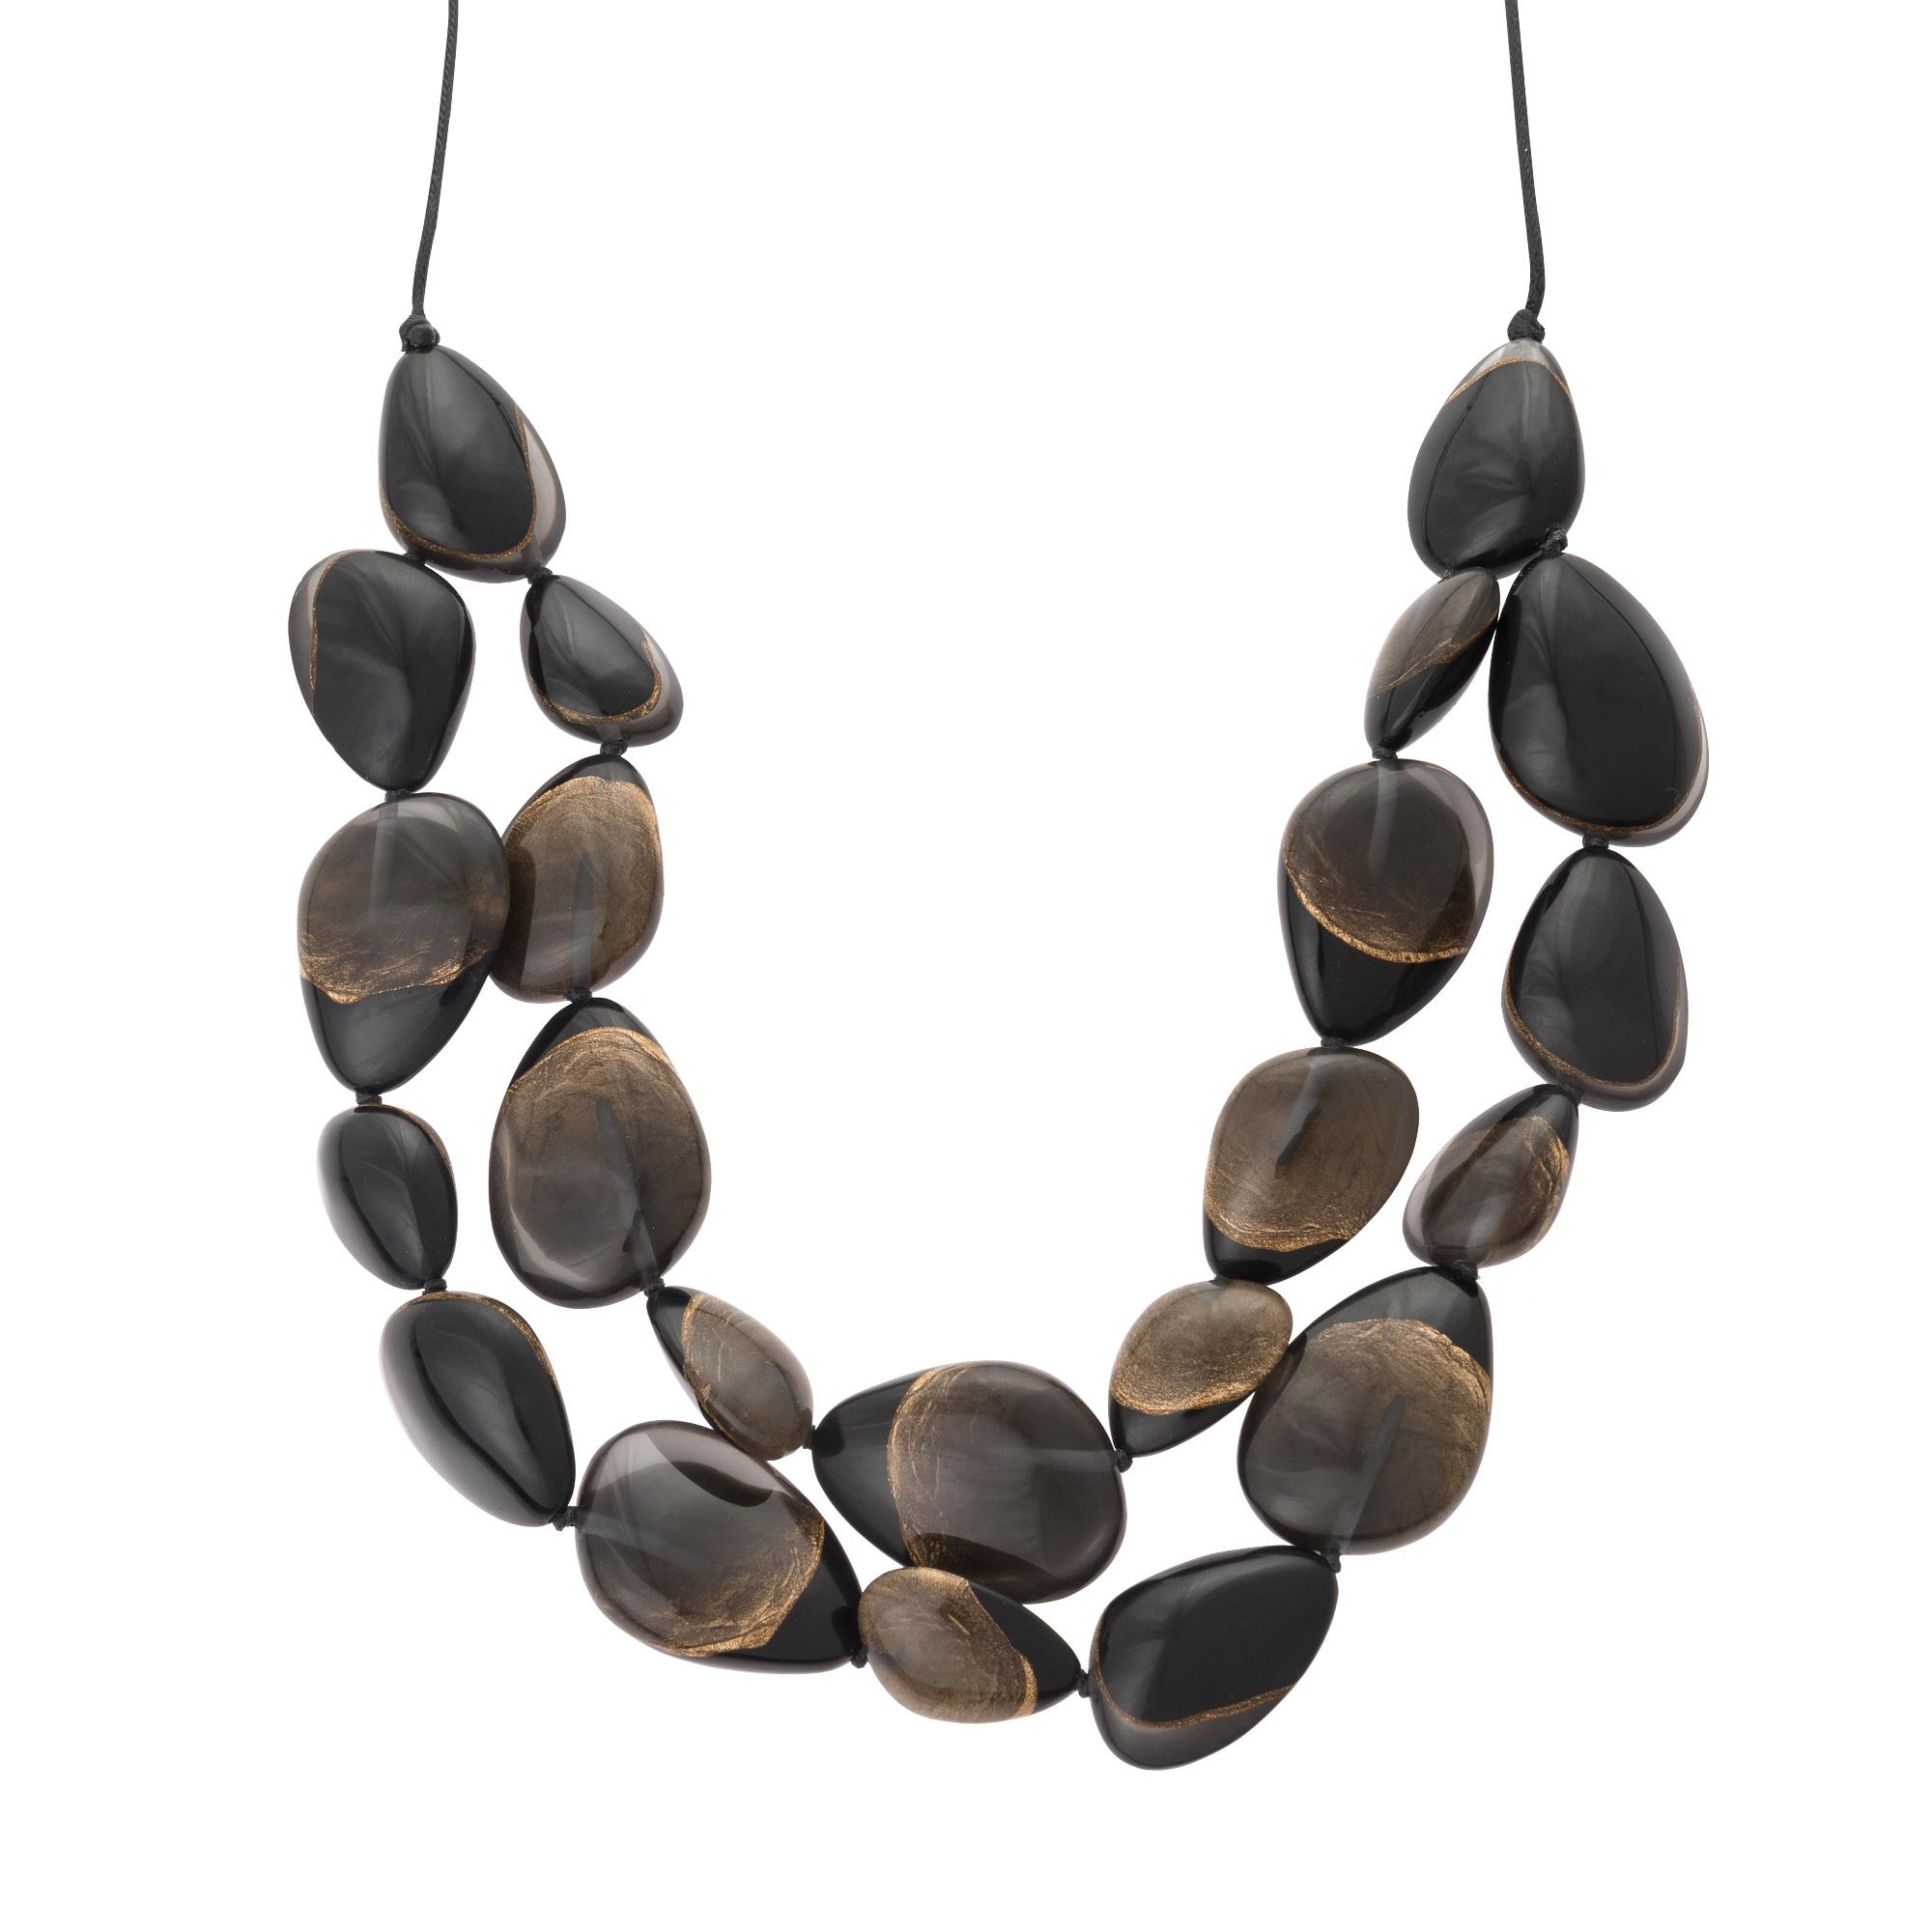 Oliver Bonas Kay Two Tone Pebble Double Row Necklace in Black - Lyst